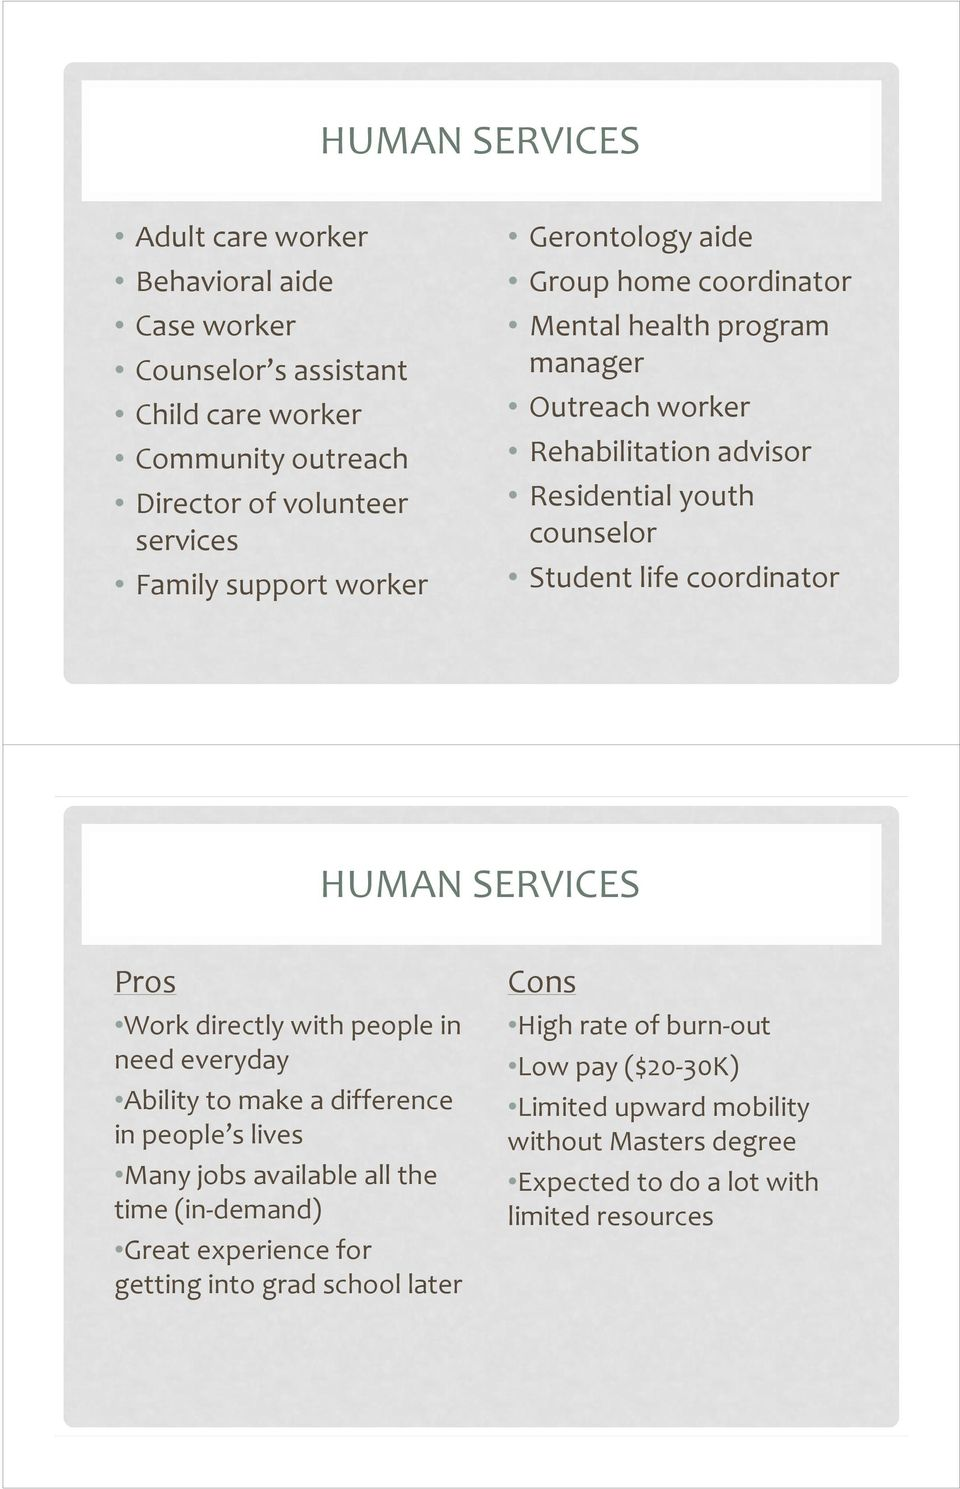 HUMAN SERVICES Pros Work directly with people in need everyday Ability to make a difference in people s lives Many jobs available all the time (in demand) Great